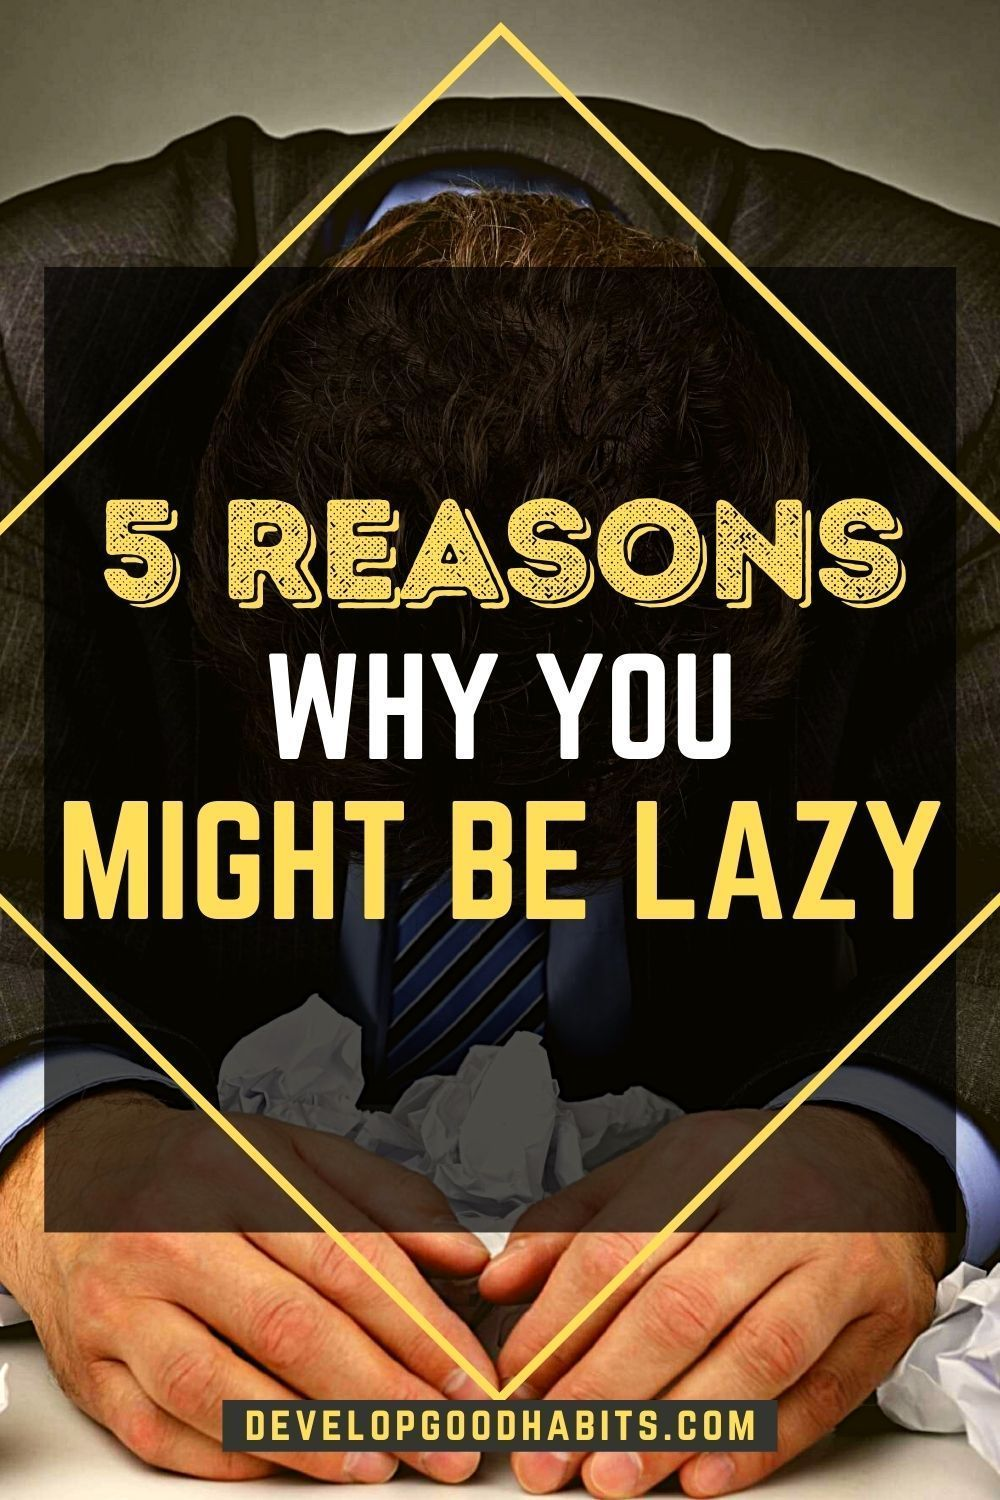 9cf012aca6e4e938b17d83129efb6820 - How To Get Out Of The Habit Of Being Lazy